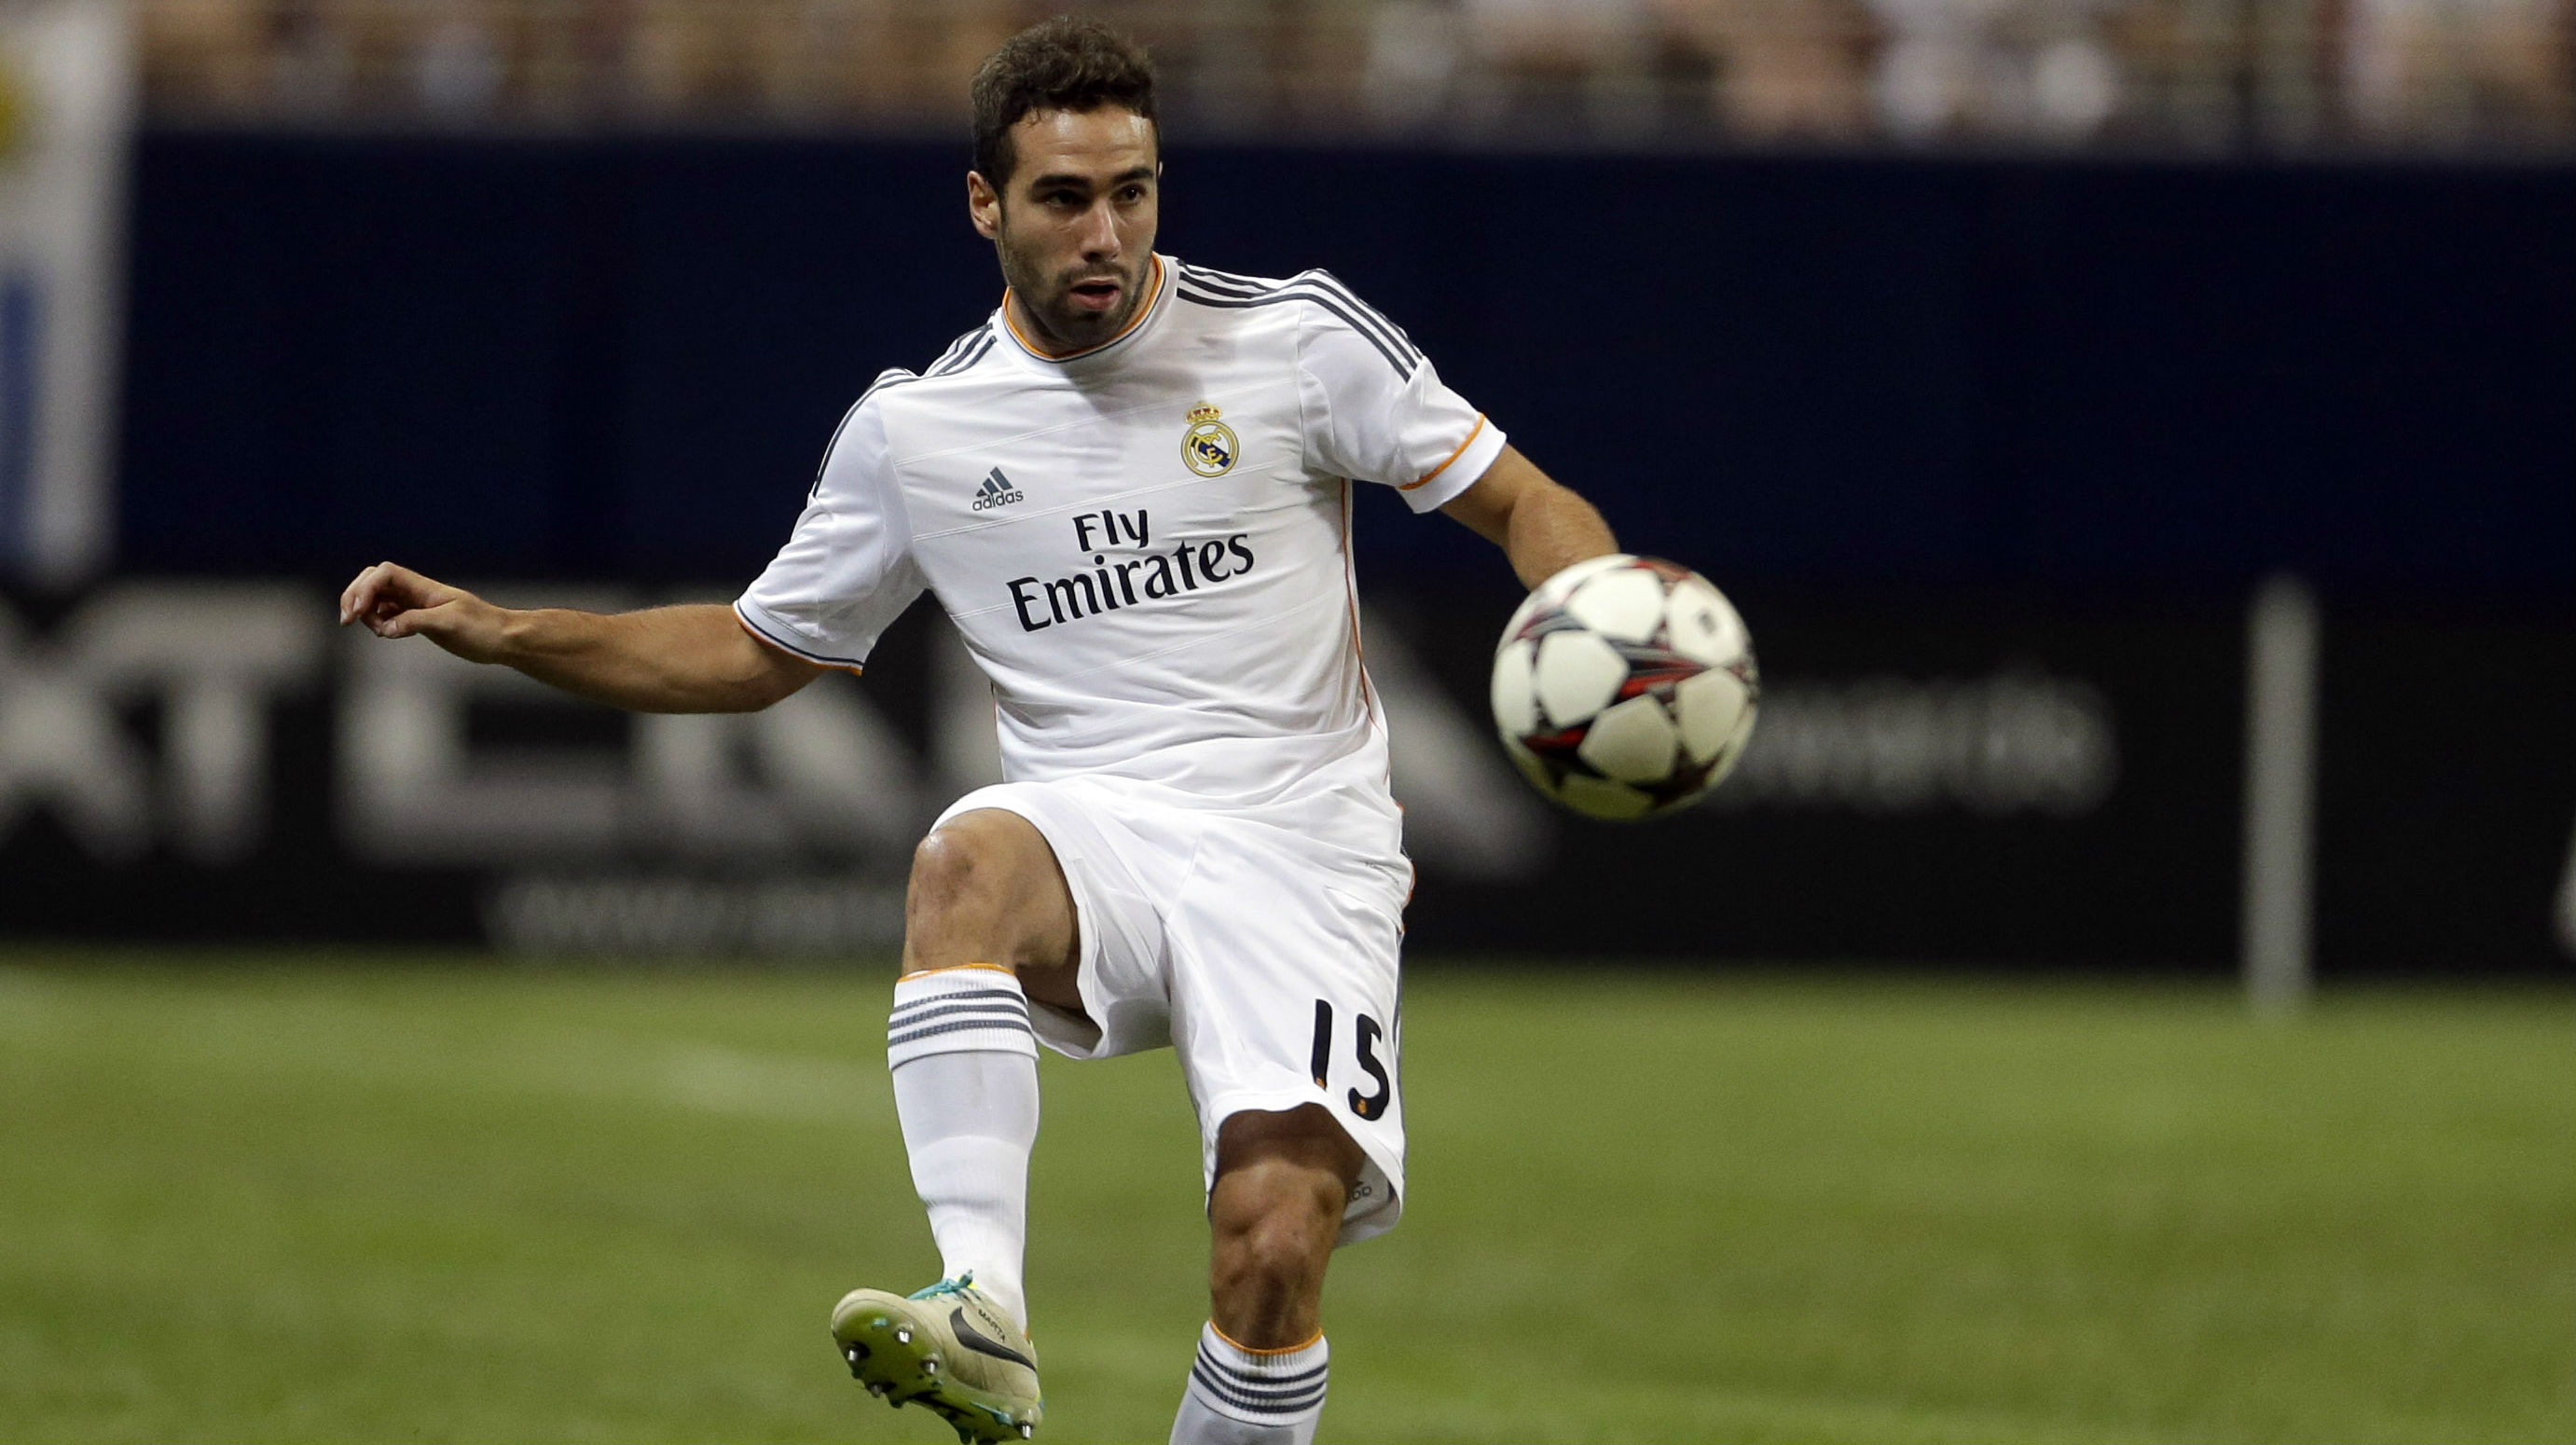 Real Madrid: Carvajal salterà il derby